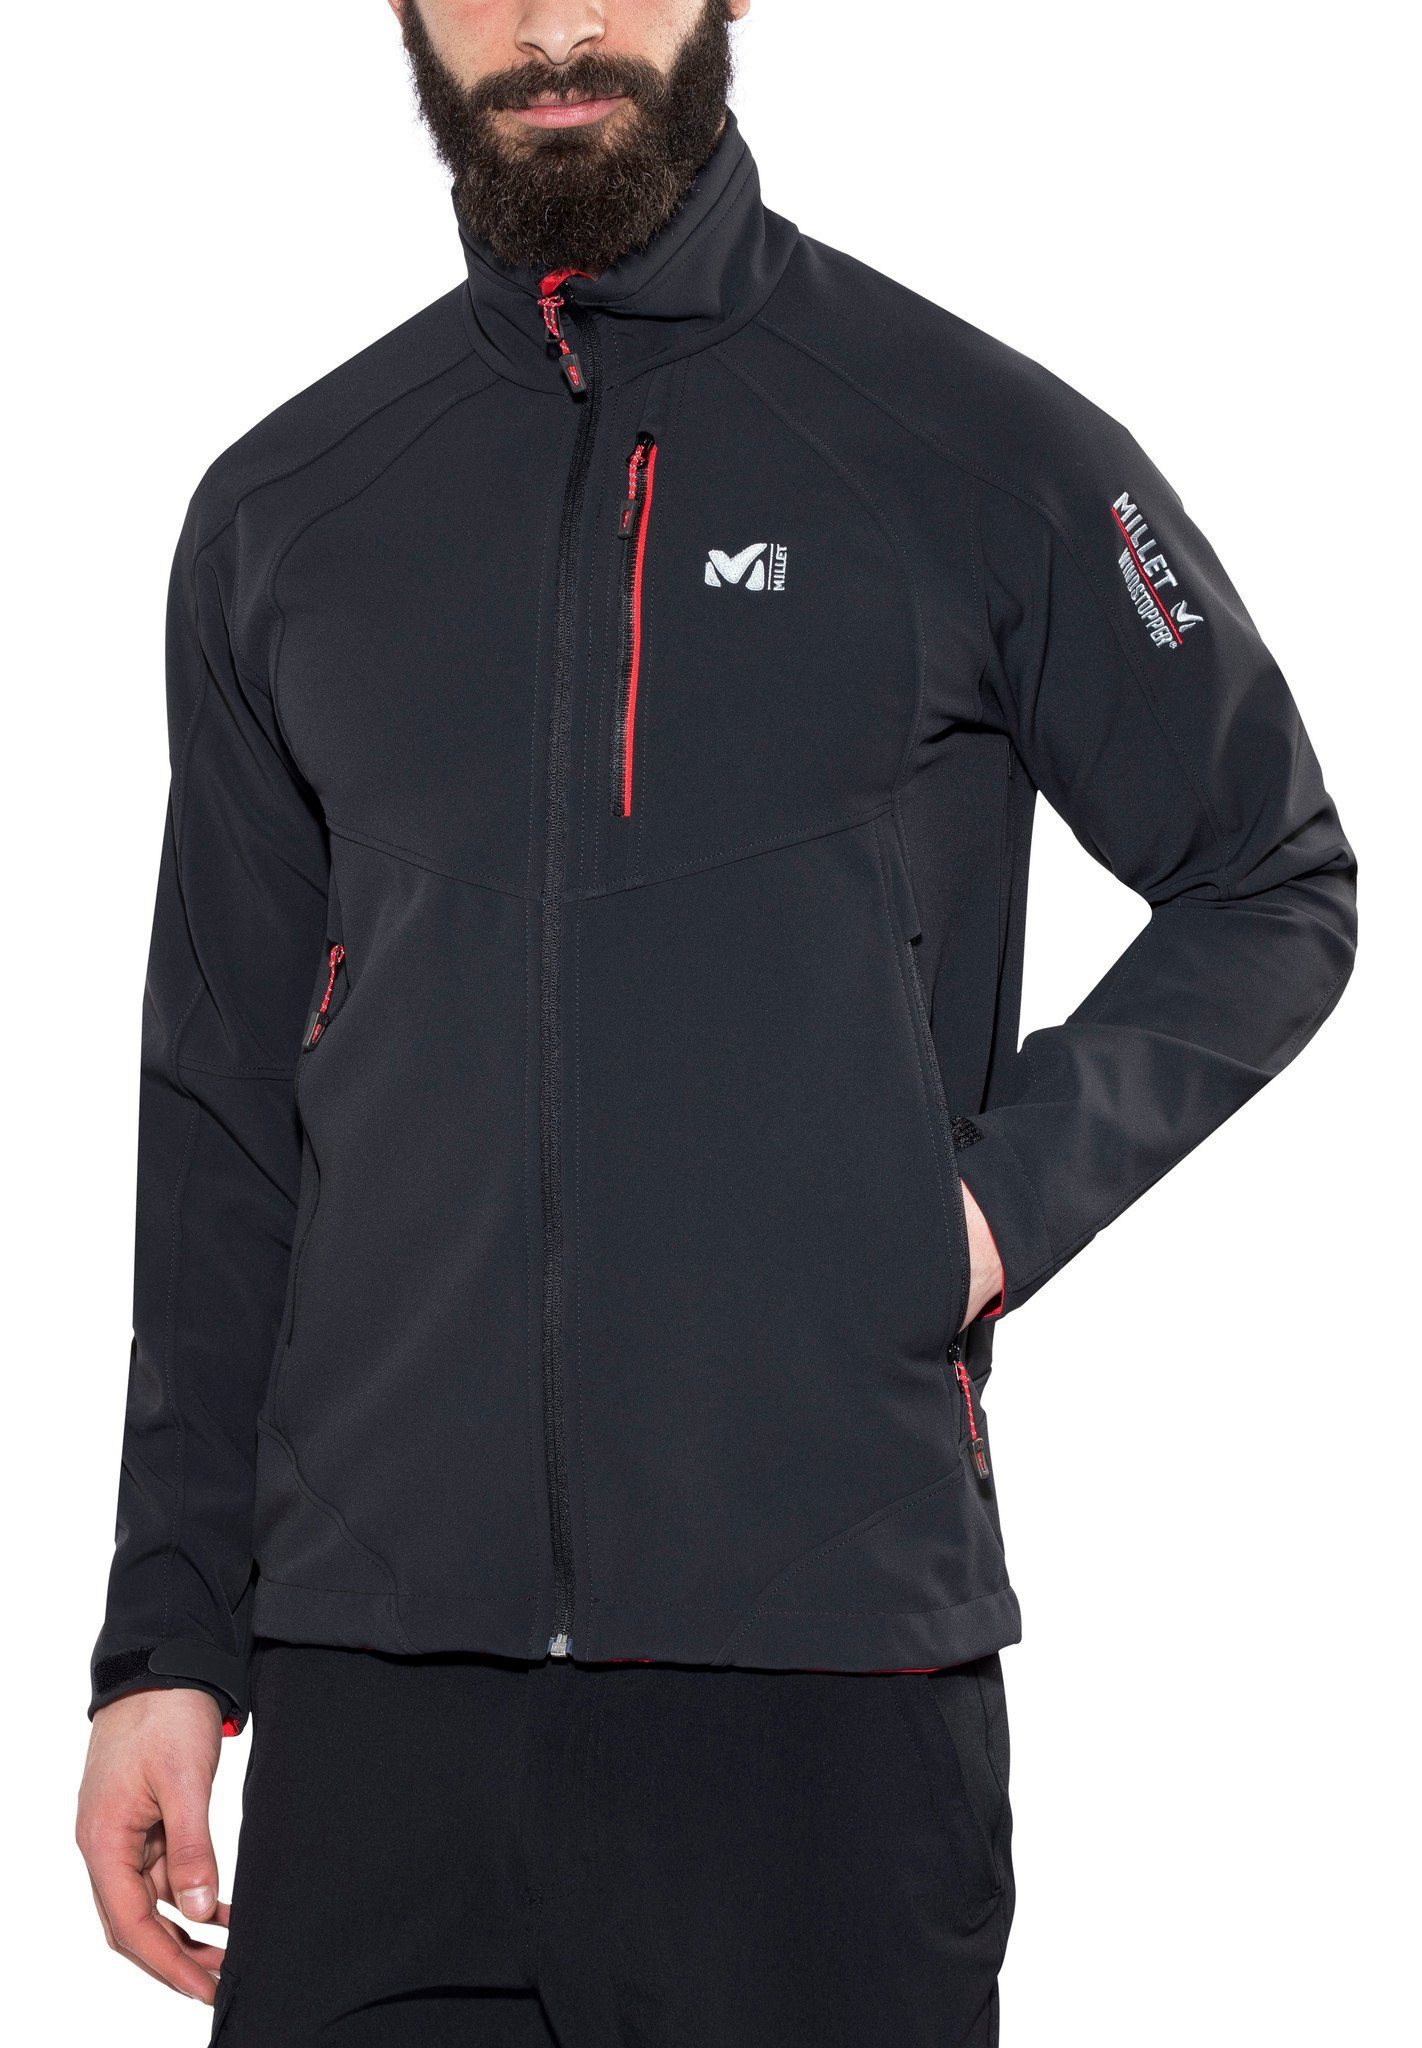 Millet Outdoorjacke »W3 Pro WDS Jacket Men«